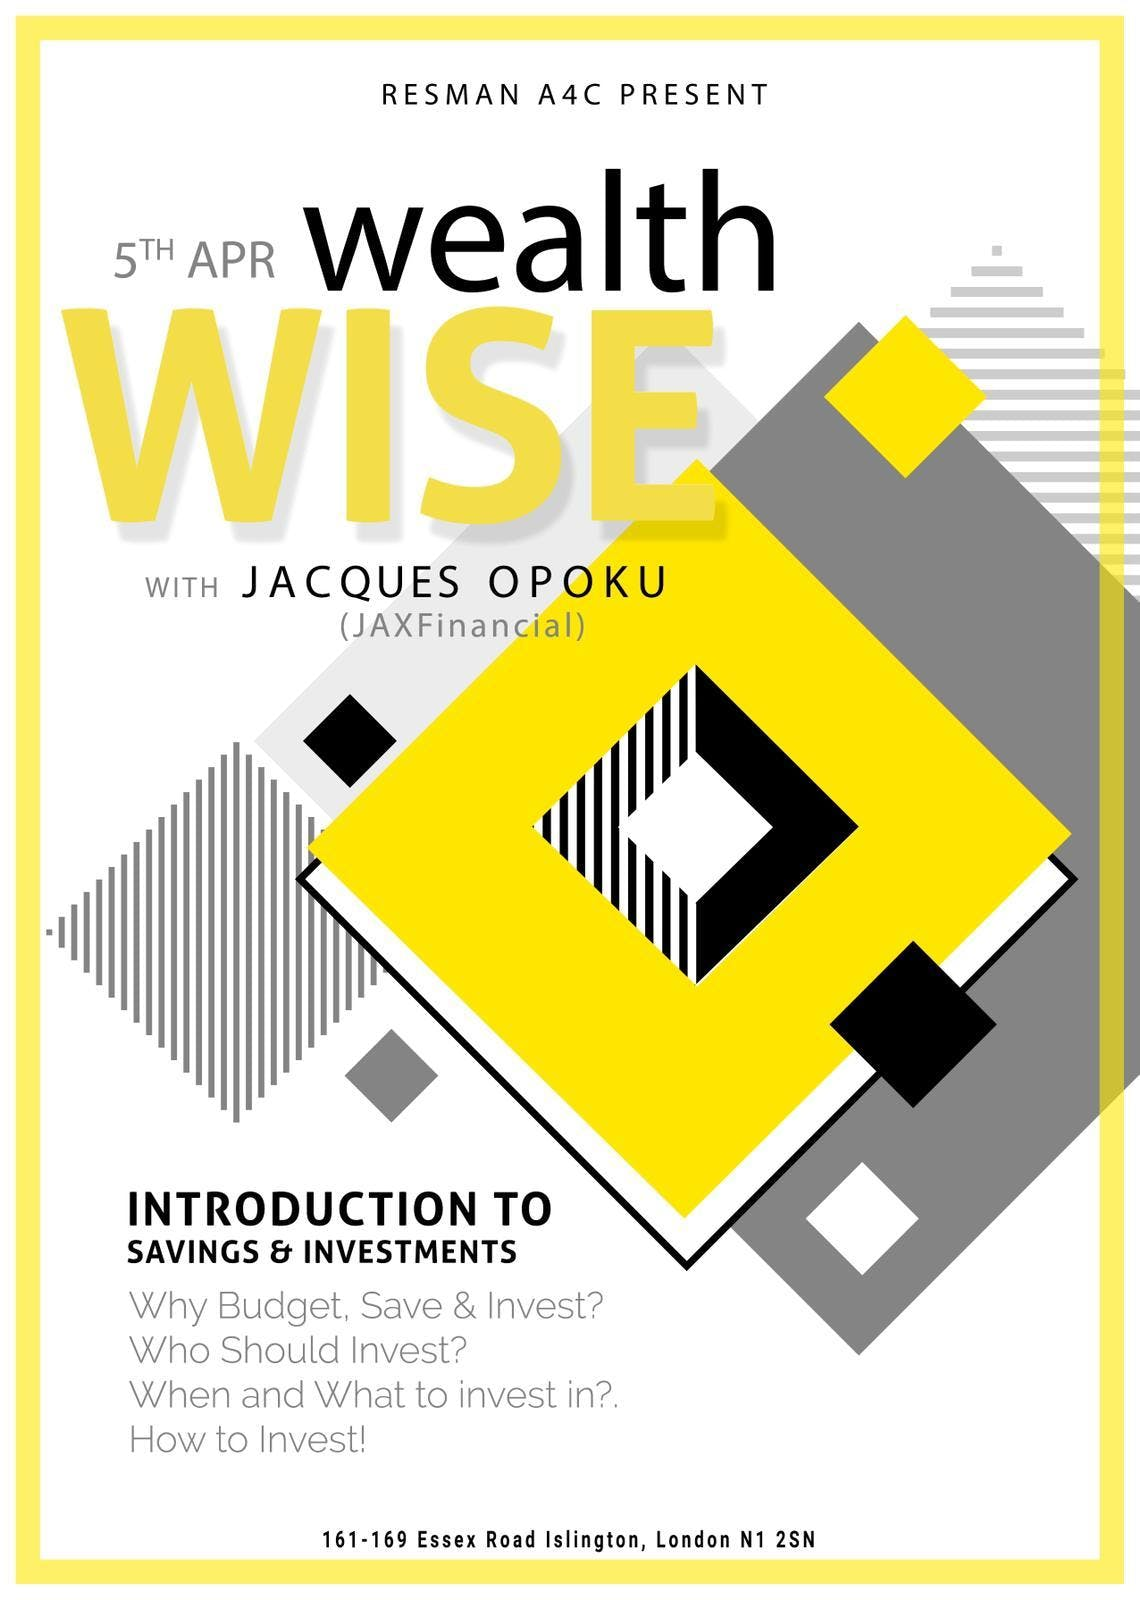 Wealth Wise with JAXFinancial (Jacques Opoku)